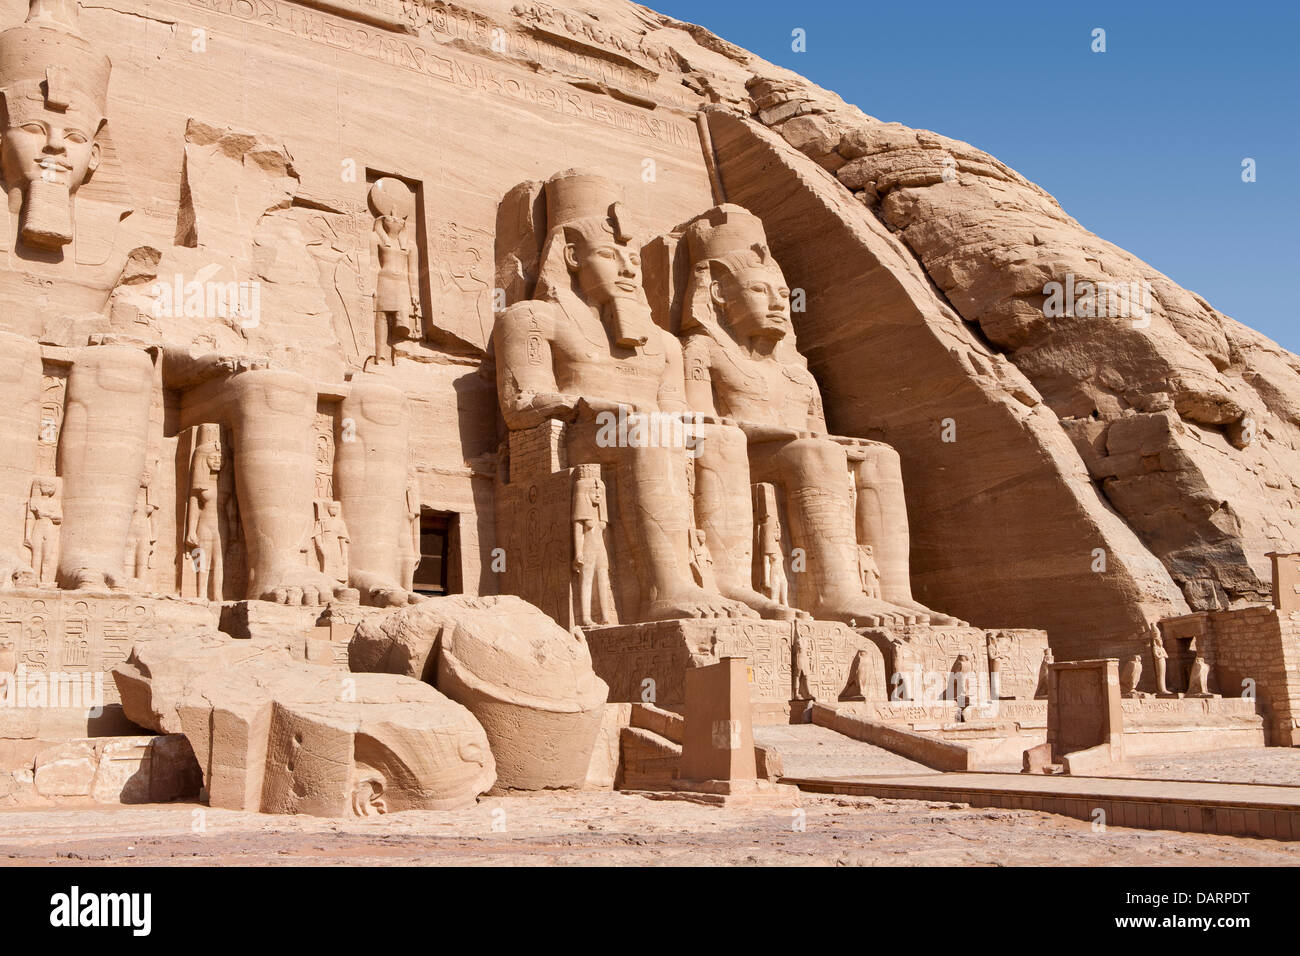 The vast sun temple of abu simbel built by ramesses ii the unesco the vast sun temple of abu simbel built by ramesses ii the unesco world heritage site lake nasser south of aswan upper egypt gumiabroncs Gallery